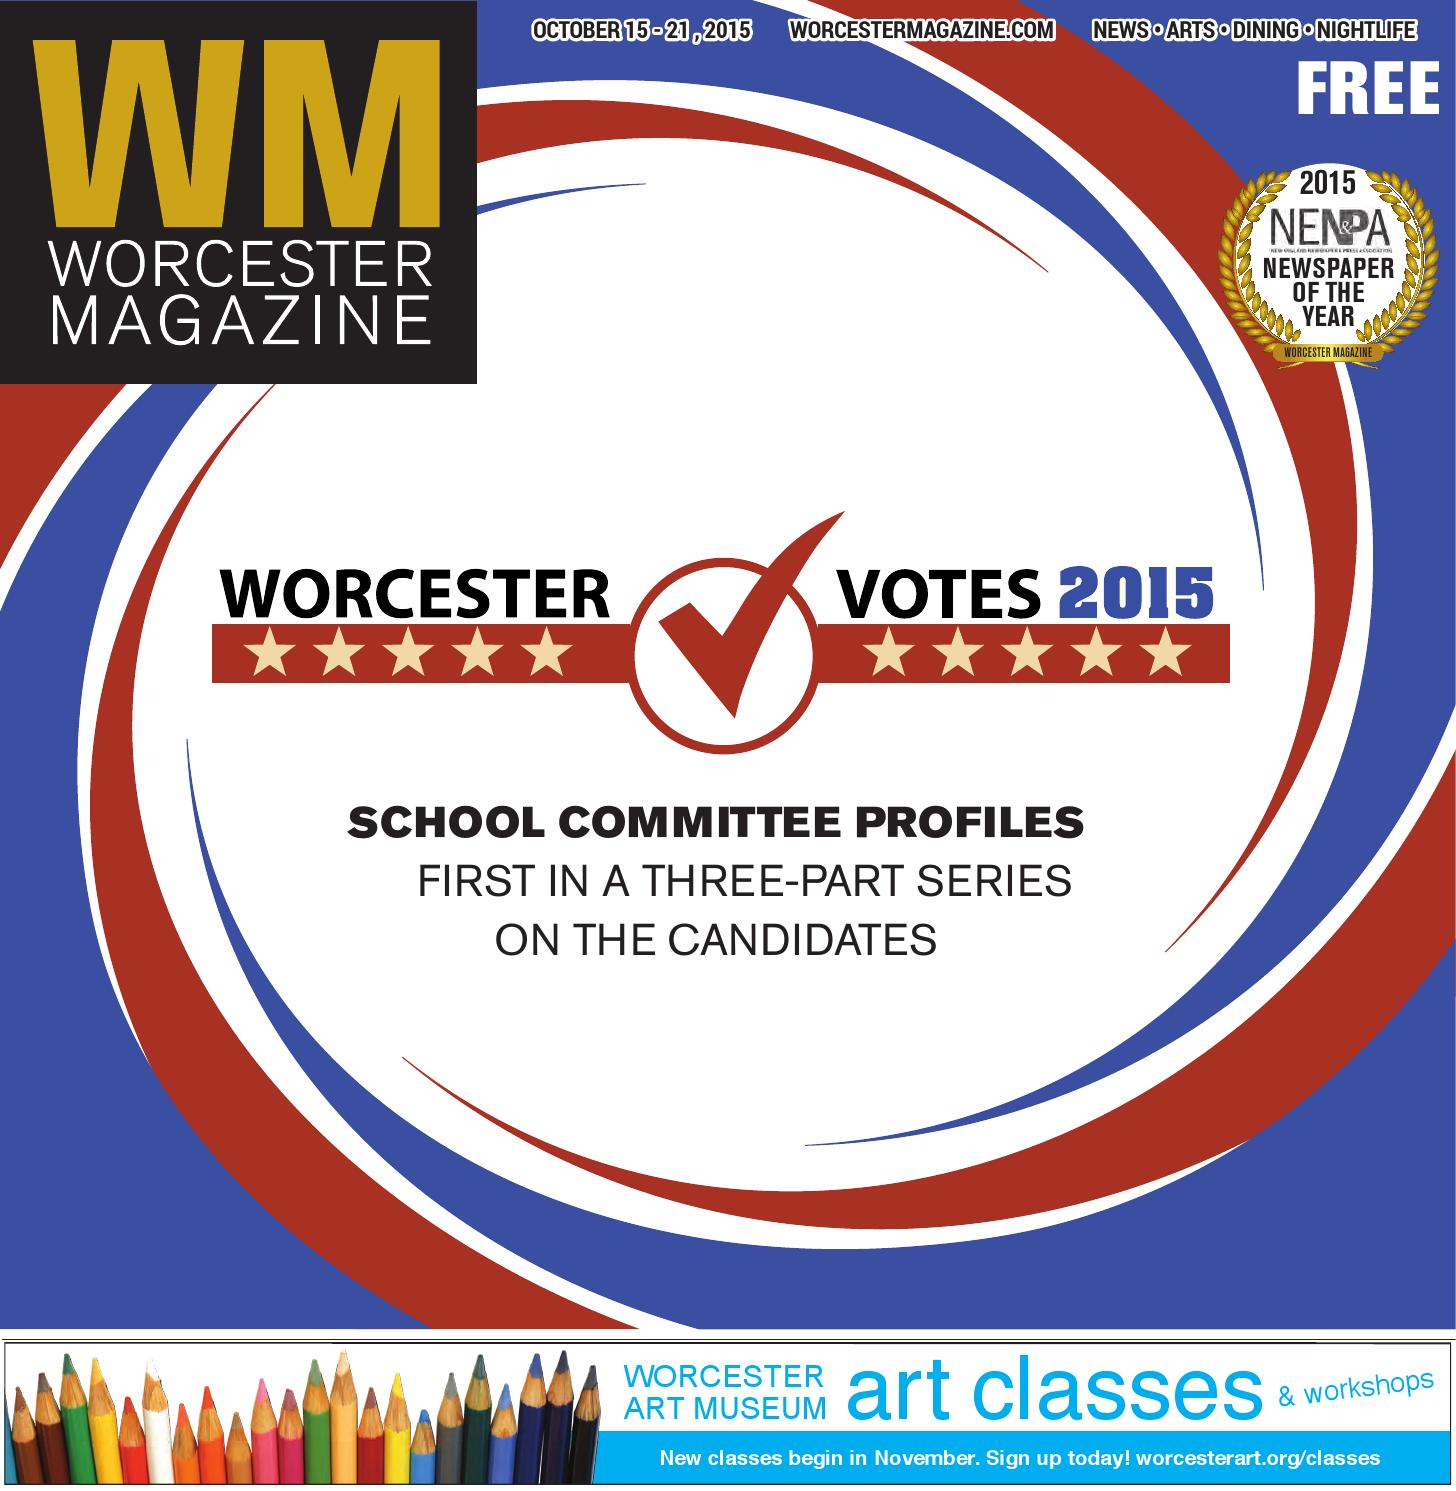 Worcester Magazine Oct. 15 - 21 e2022e5c5